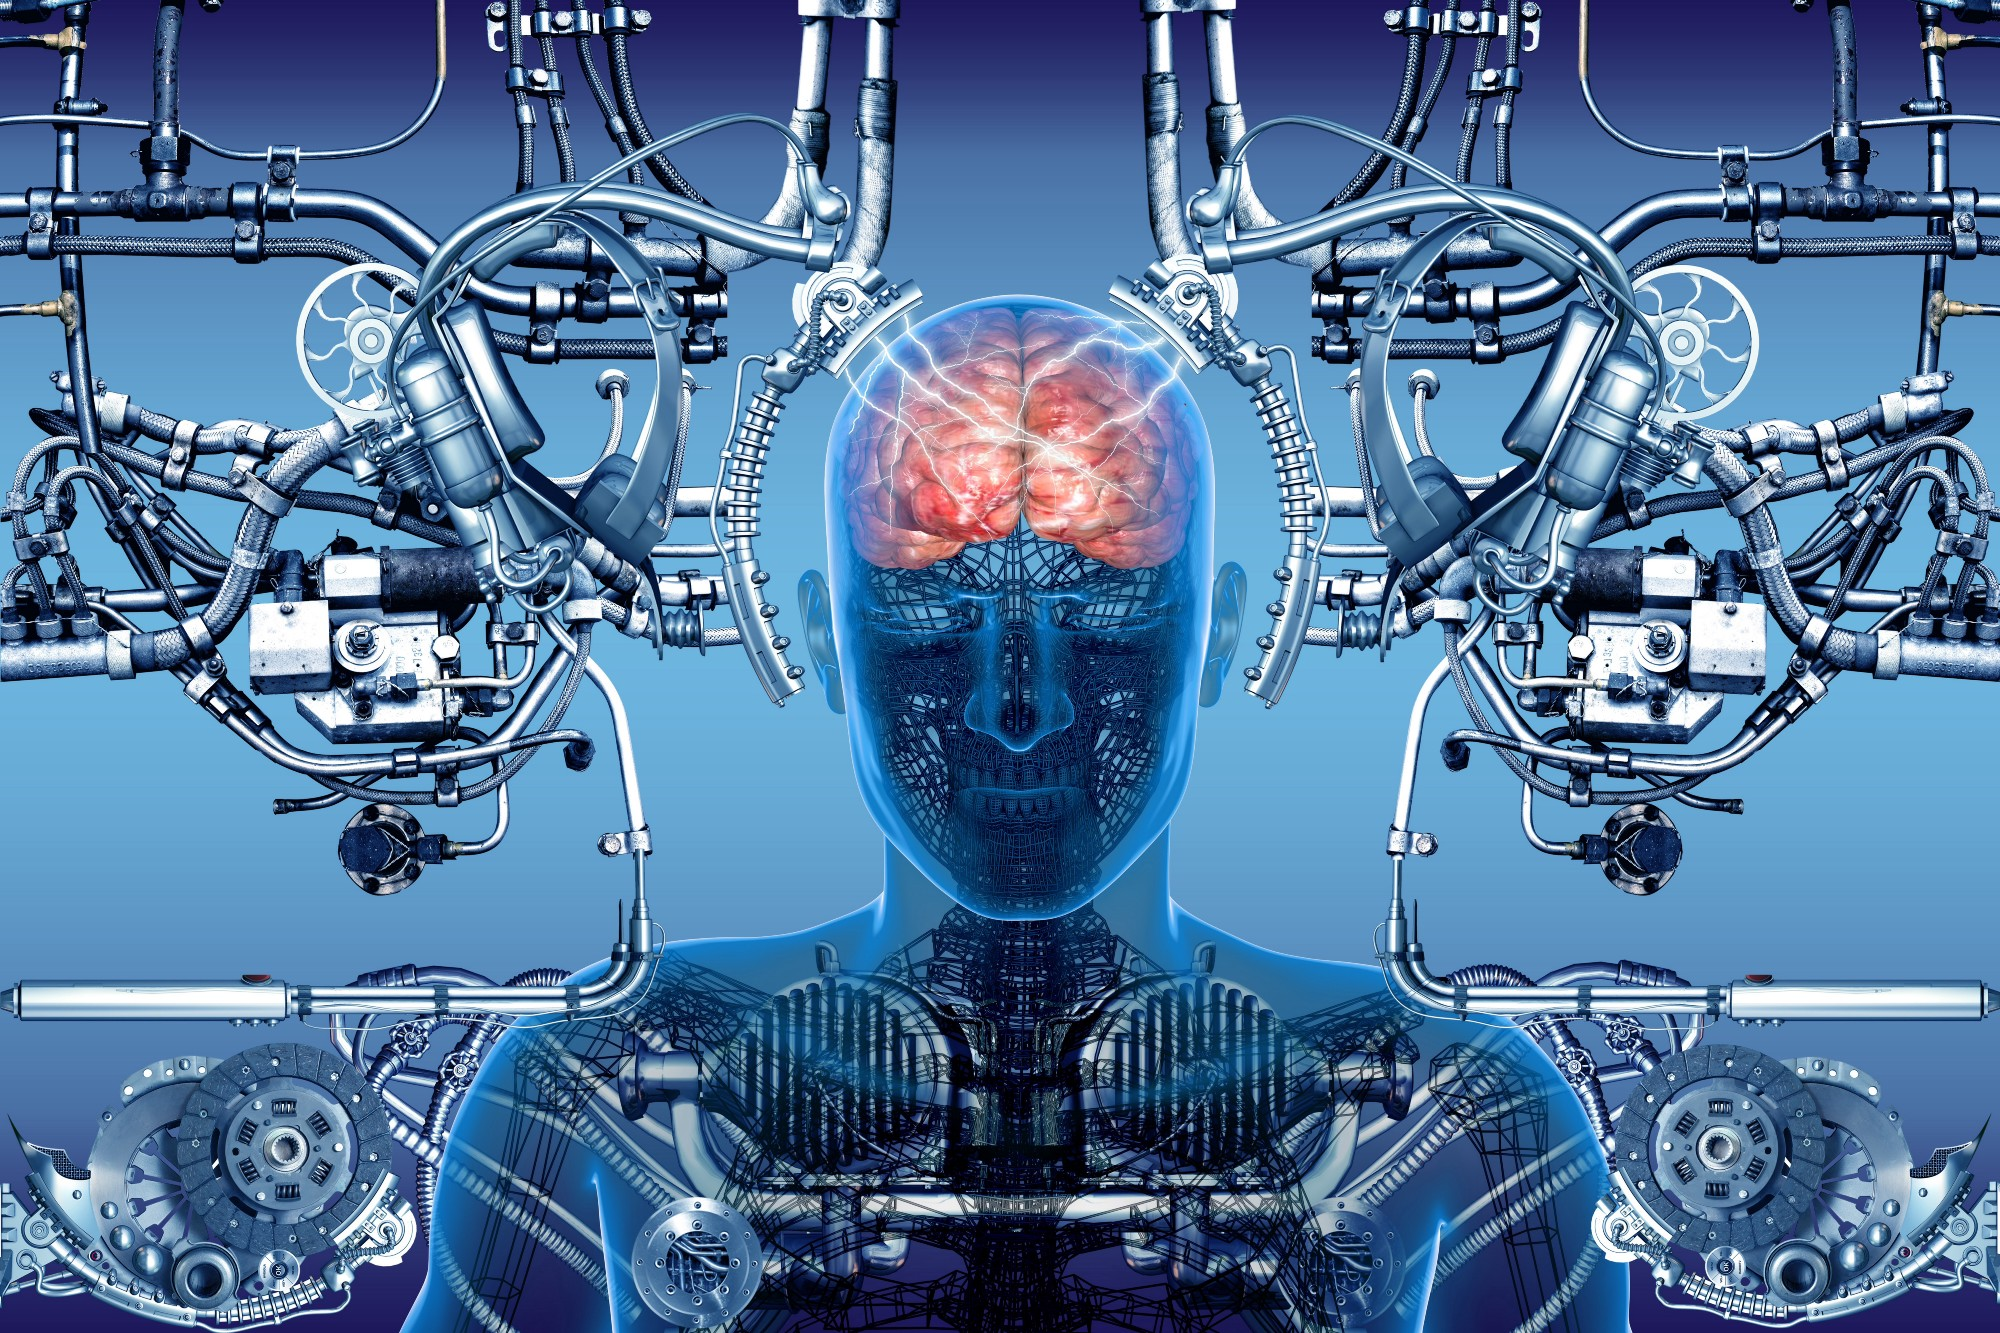 The future of human interaction with machines